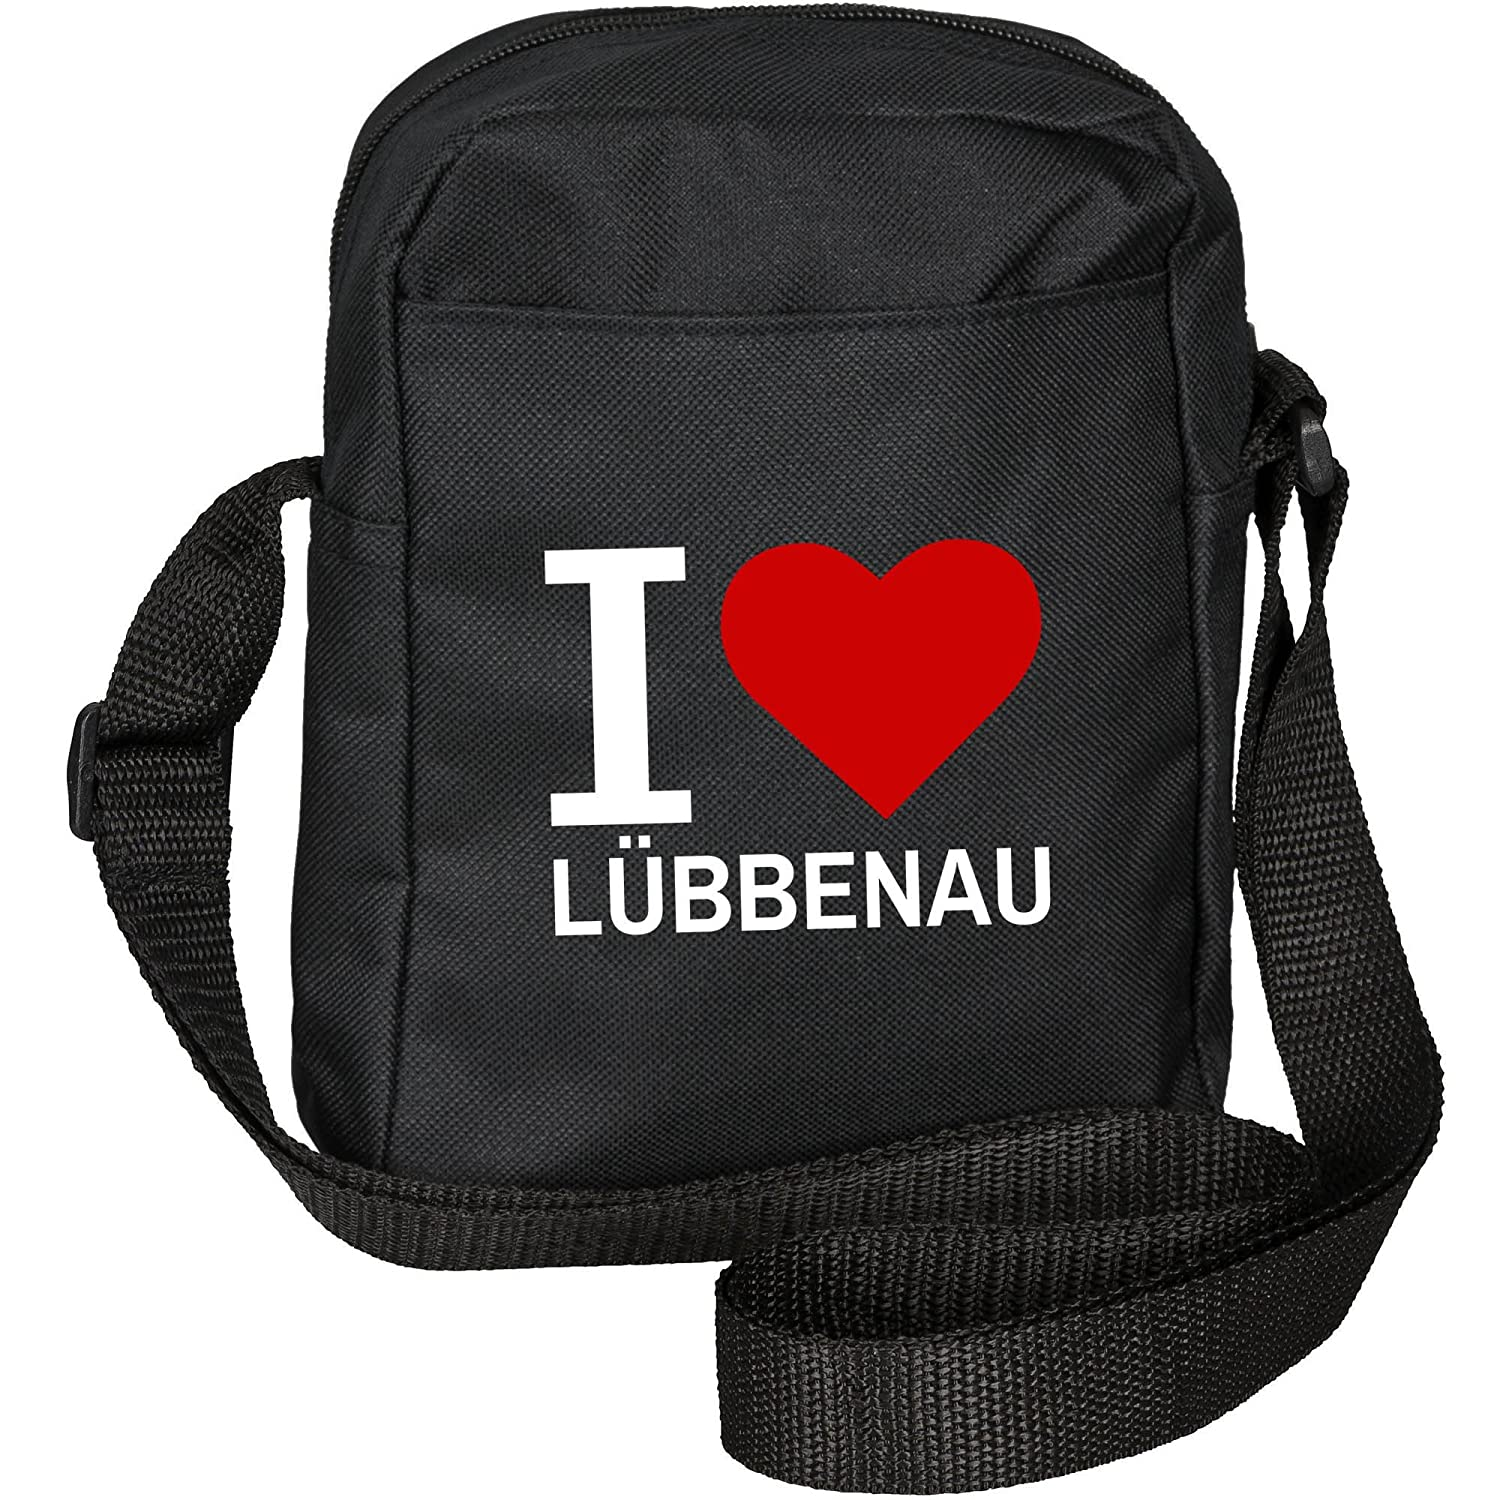 I Love L眉BBENAU Shoulder Bag Classic Black